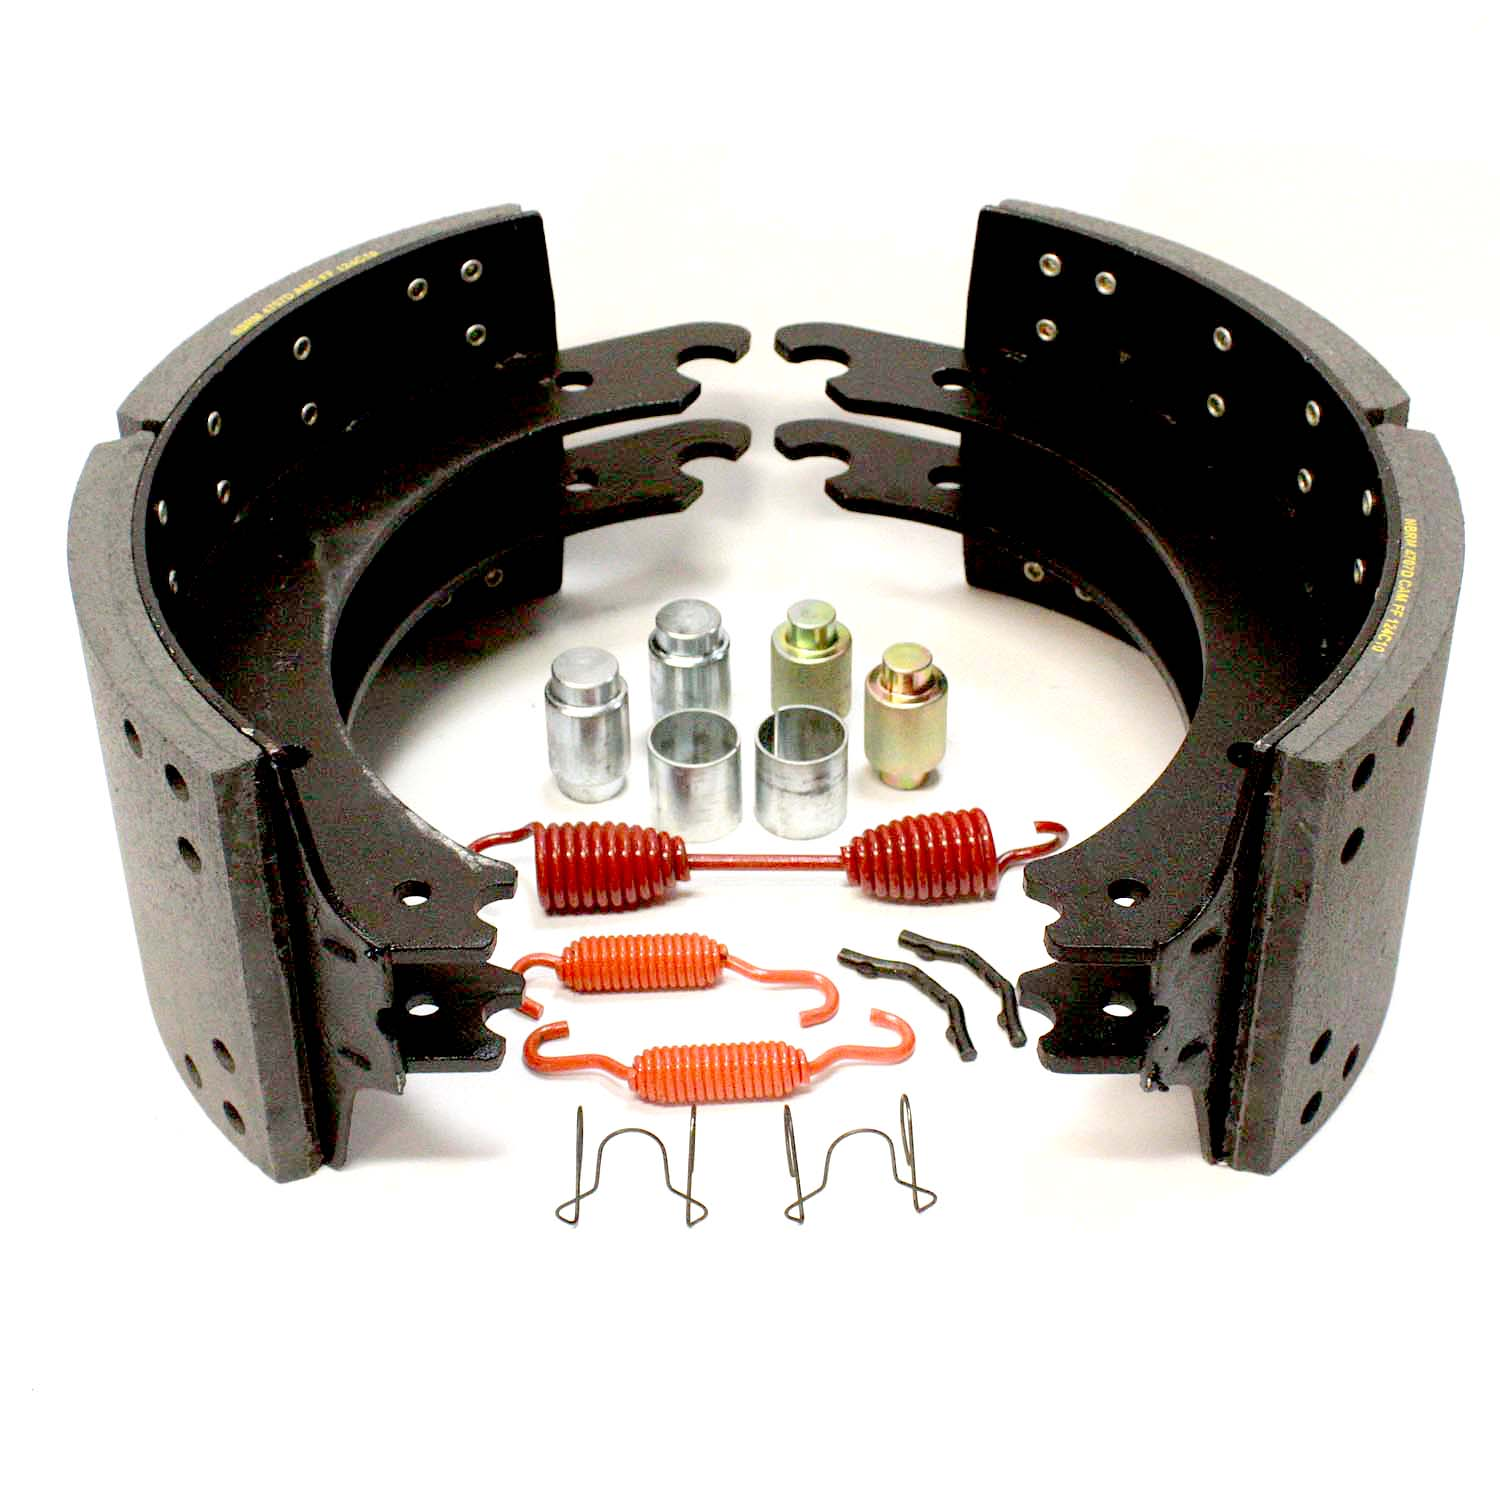 L4515Q-20-QK1 Box of Brakes 20K